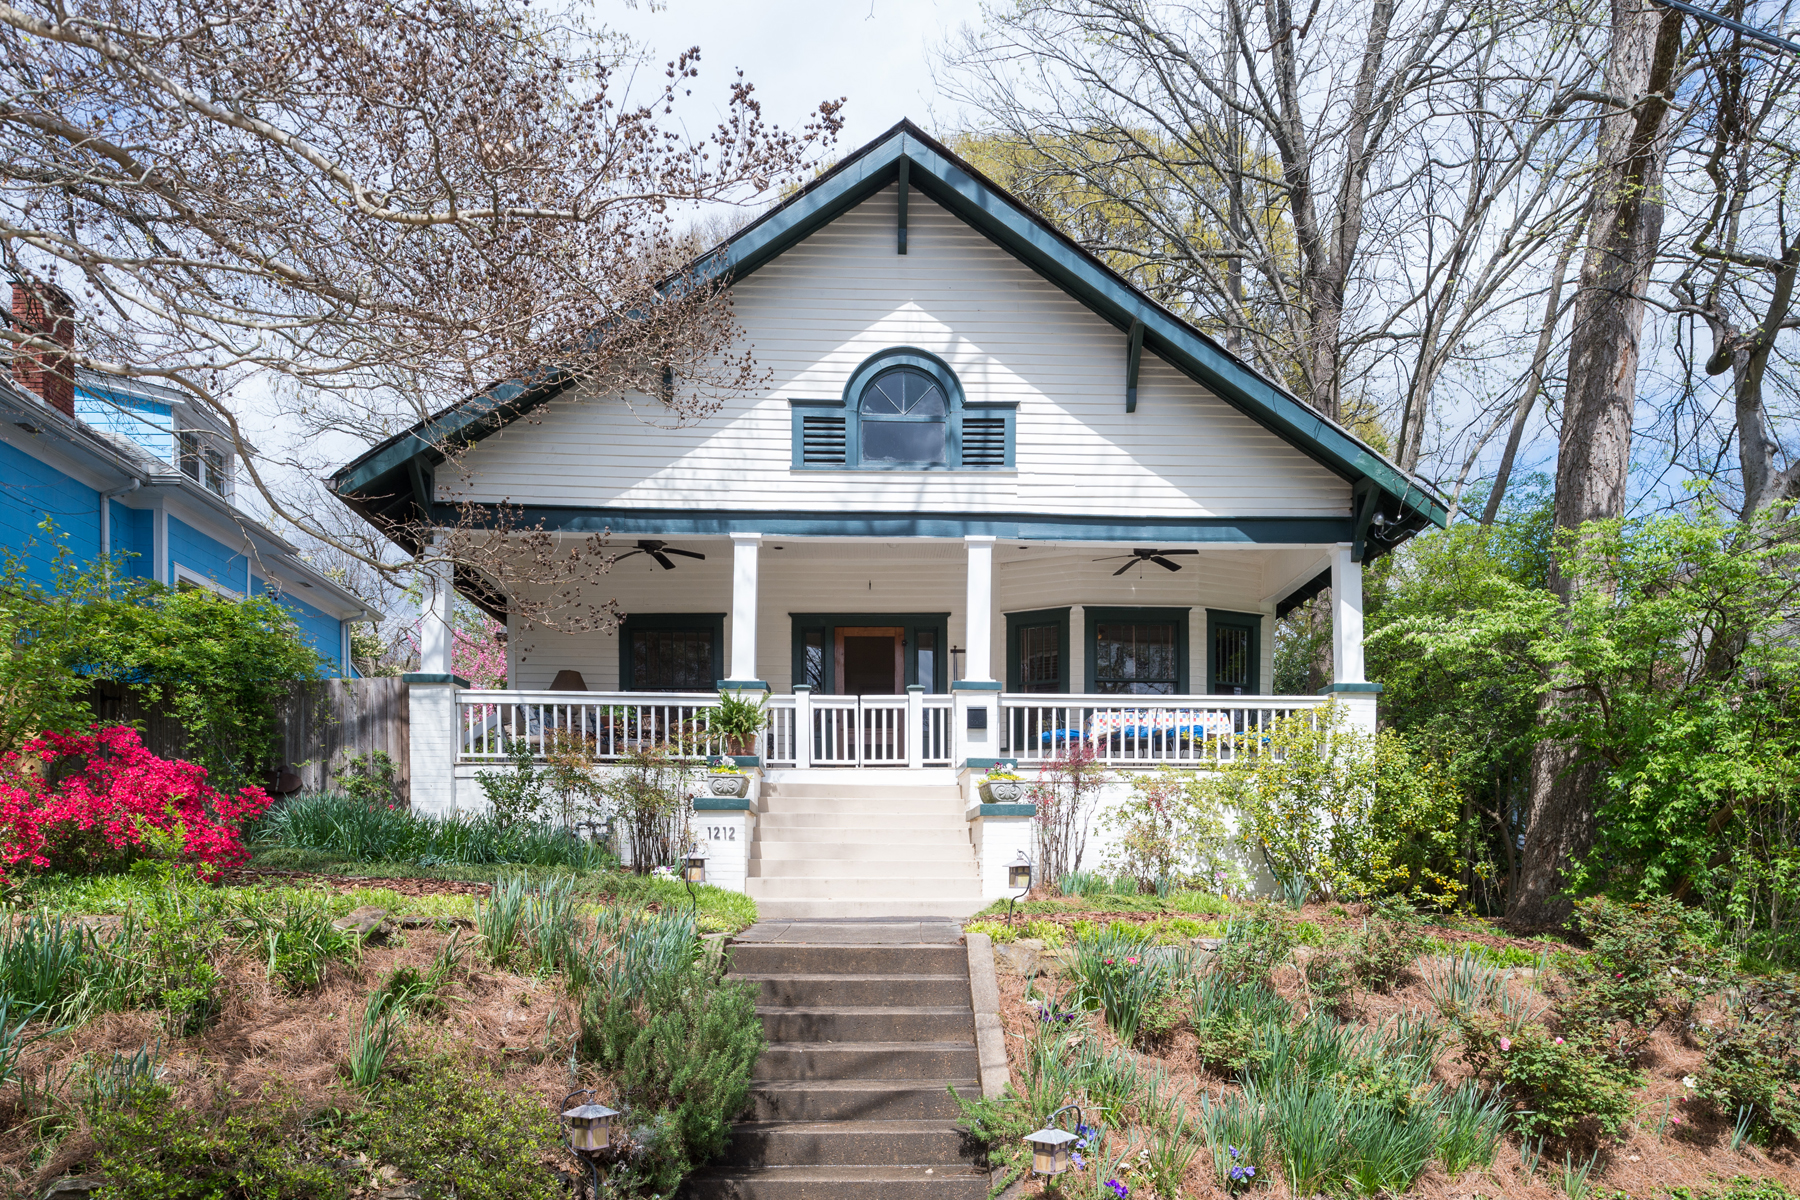 Single Family Home for Sale at Beautiful Vintage Craftsman Home 1212 Mansfield Ave Atlanta, Georgia 30307 United States